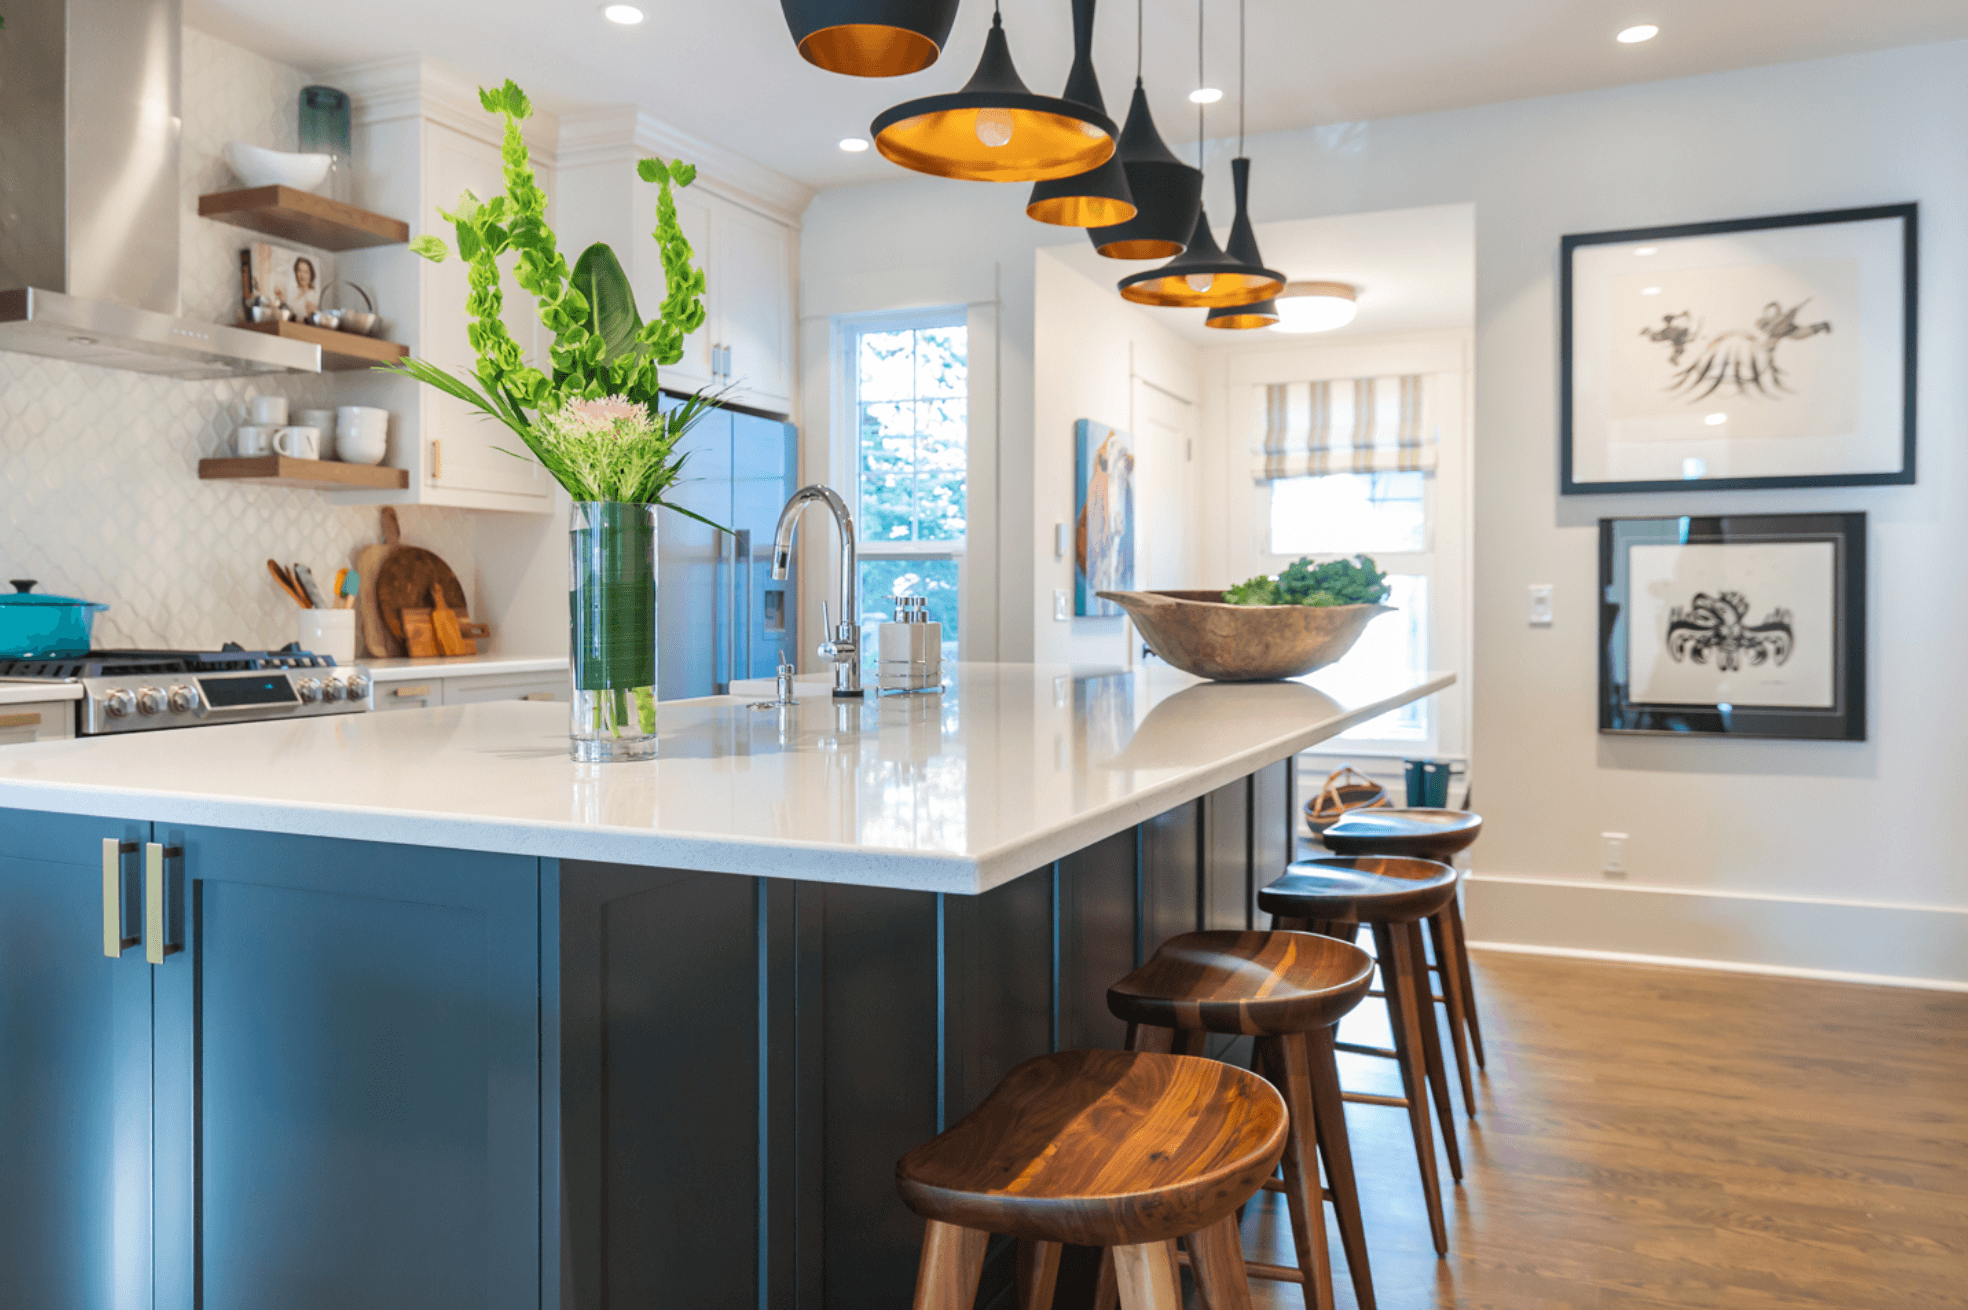 Stephanie Charest Portfolio - Completed modern kitchen with bar stools